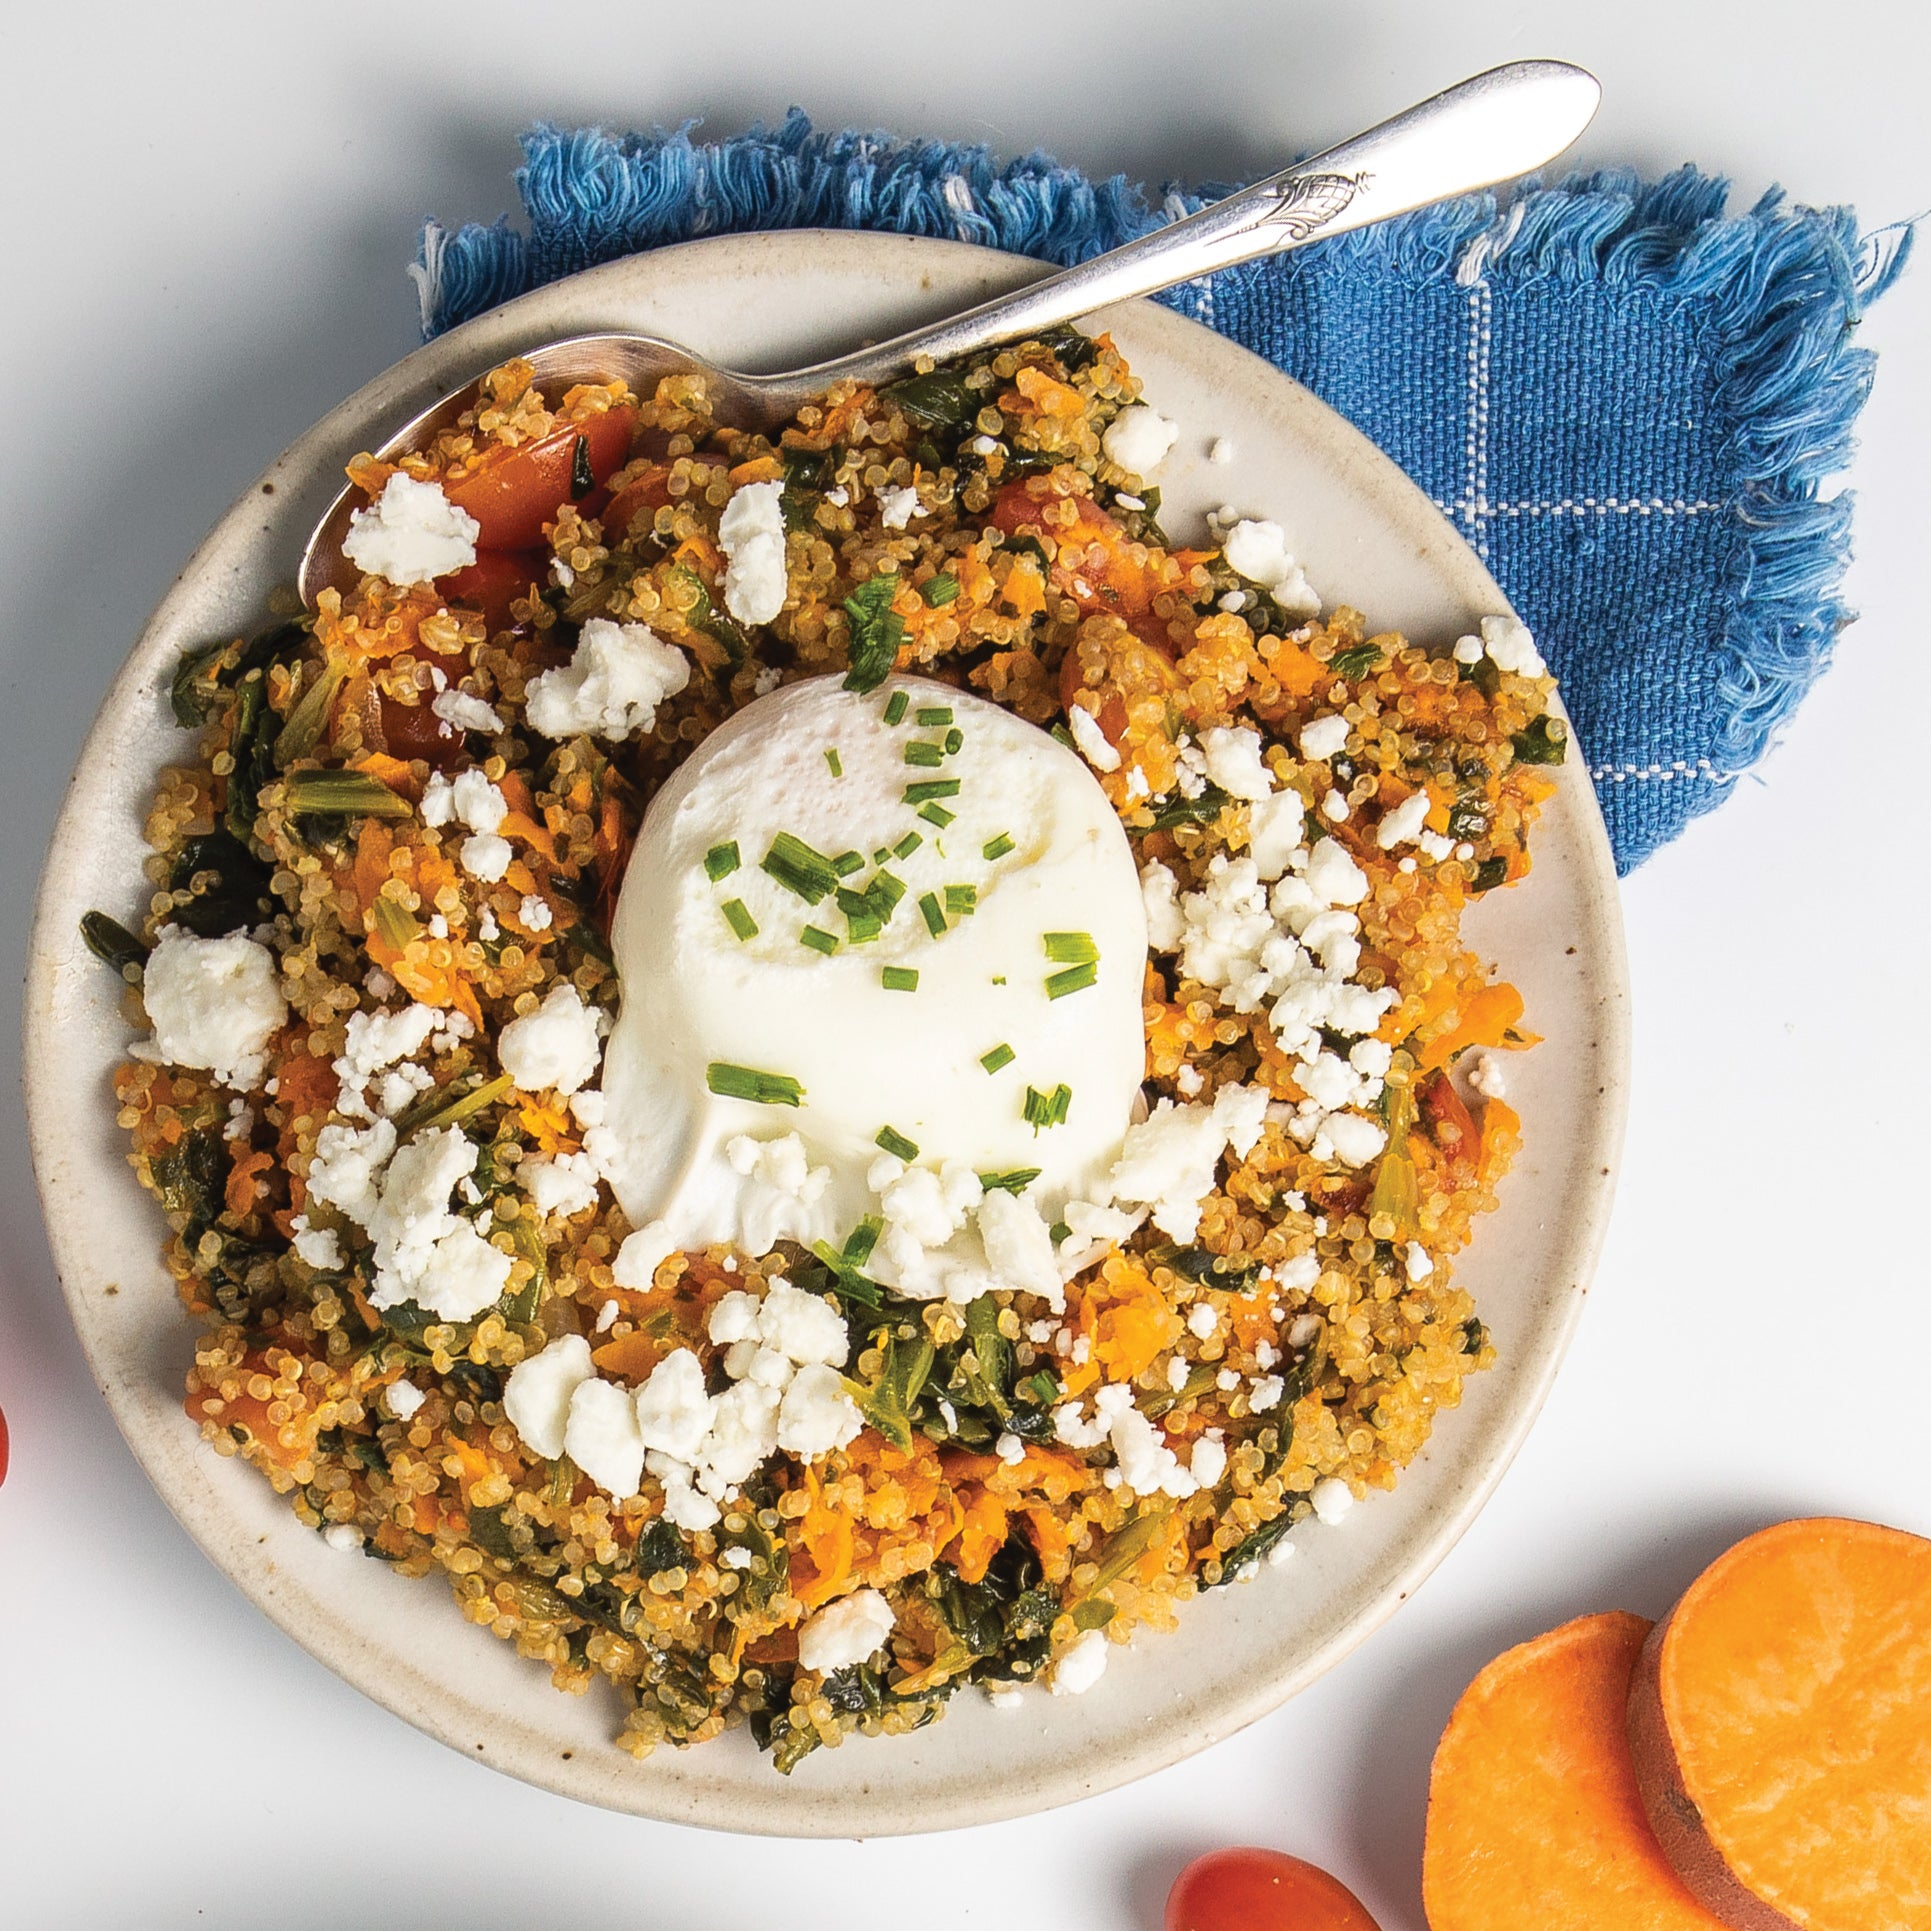 An egg recipe that includes sweet potato quinoa bowl with poached egg on top